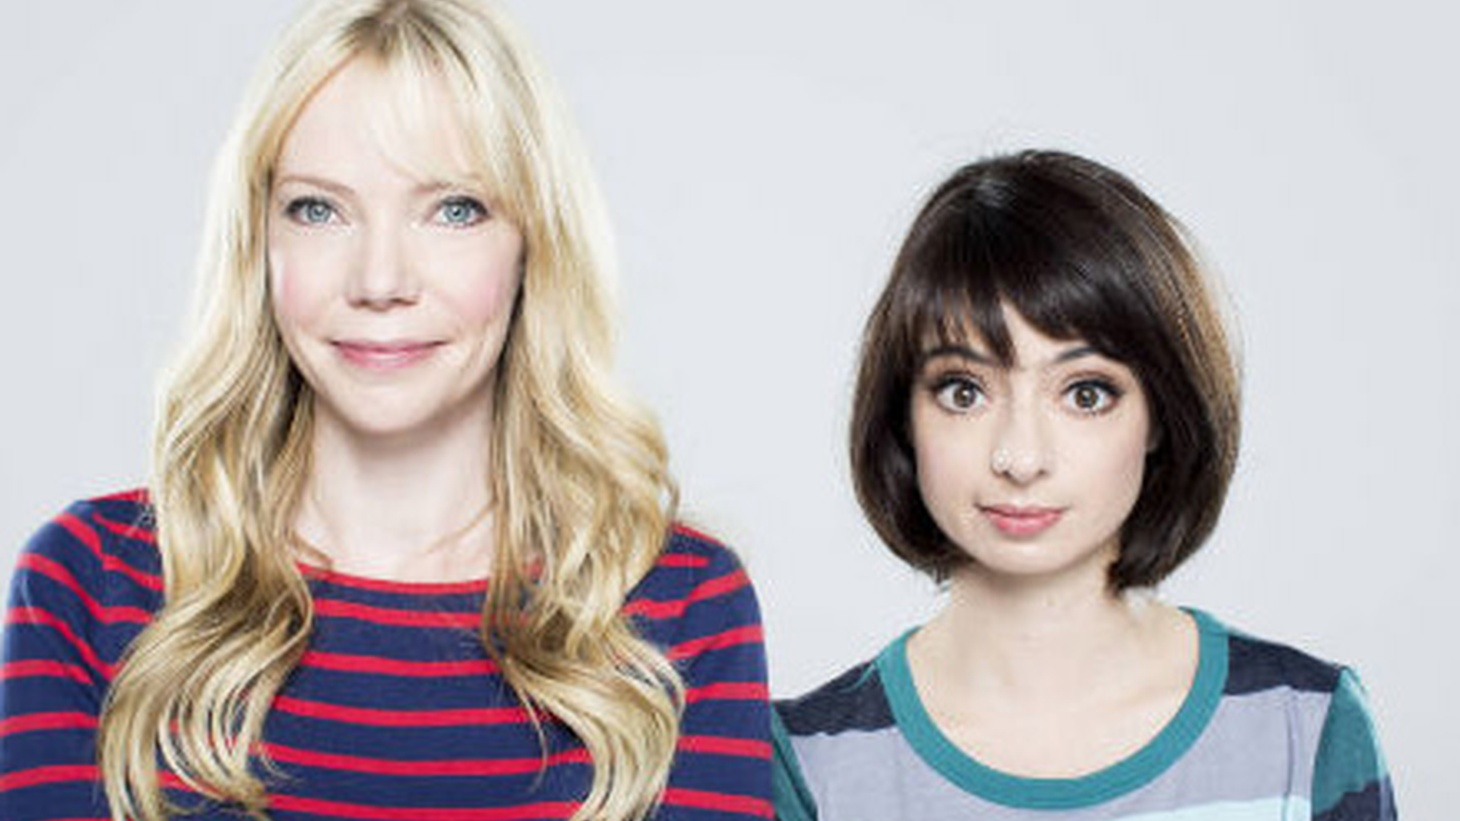 Kate Micucci and Riki Lindhome, also known as Garfunkel and Oates, share stories from the road and talk about their new series on IFC.